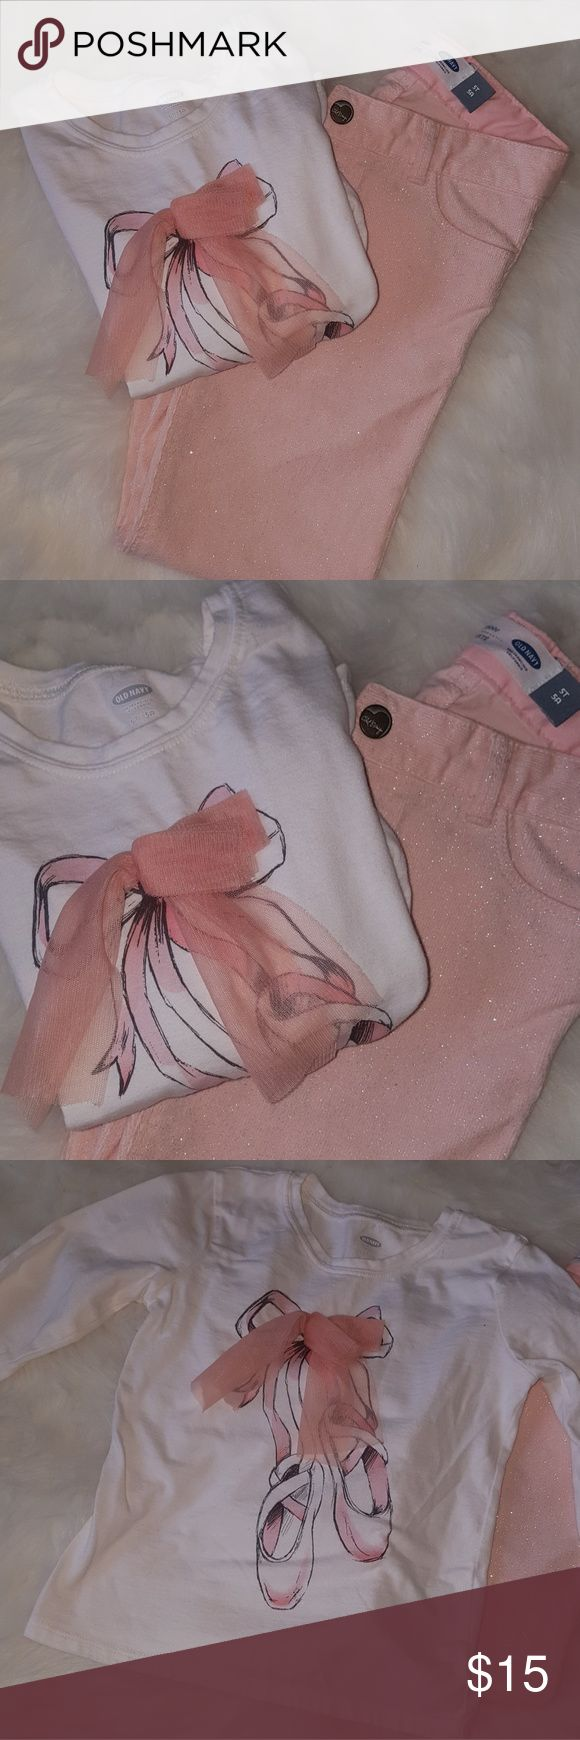 Old Navy Outfit White graphic tee with peach ribbon design and peach jeans with sparkle detail. Worn a few times. Still in great condition. Old Navy Matching Sets